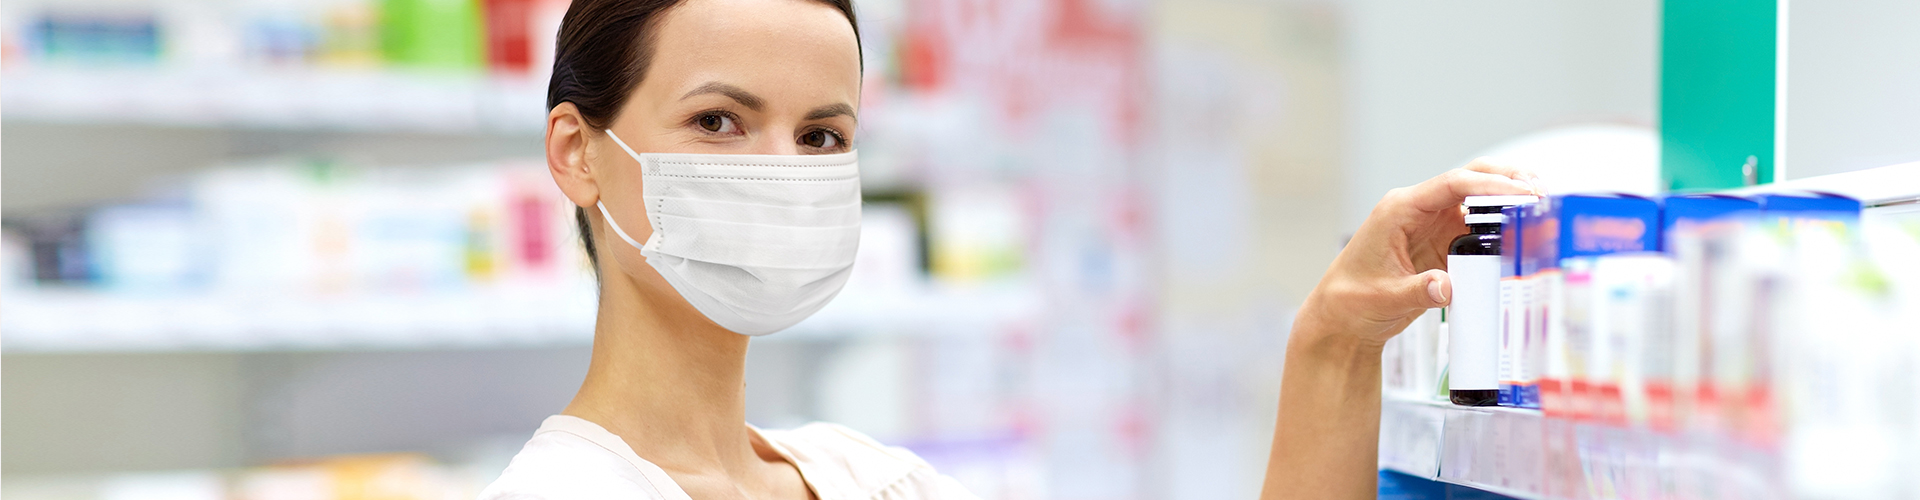 pharmacist with face mask